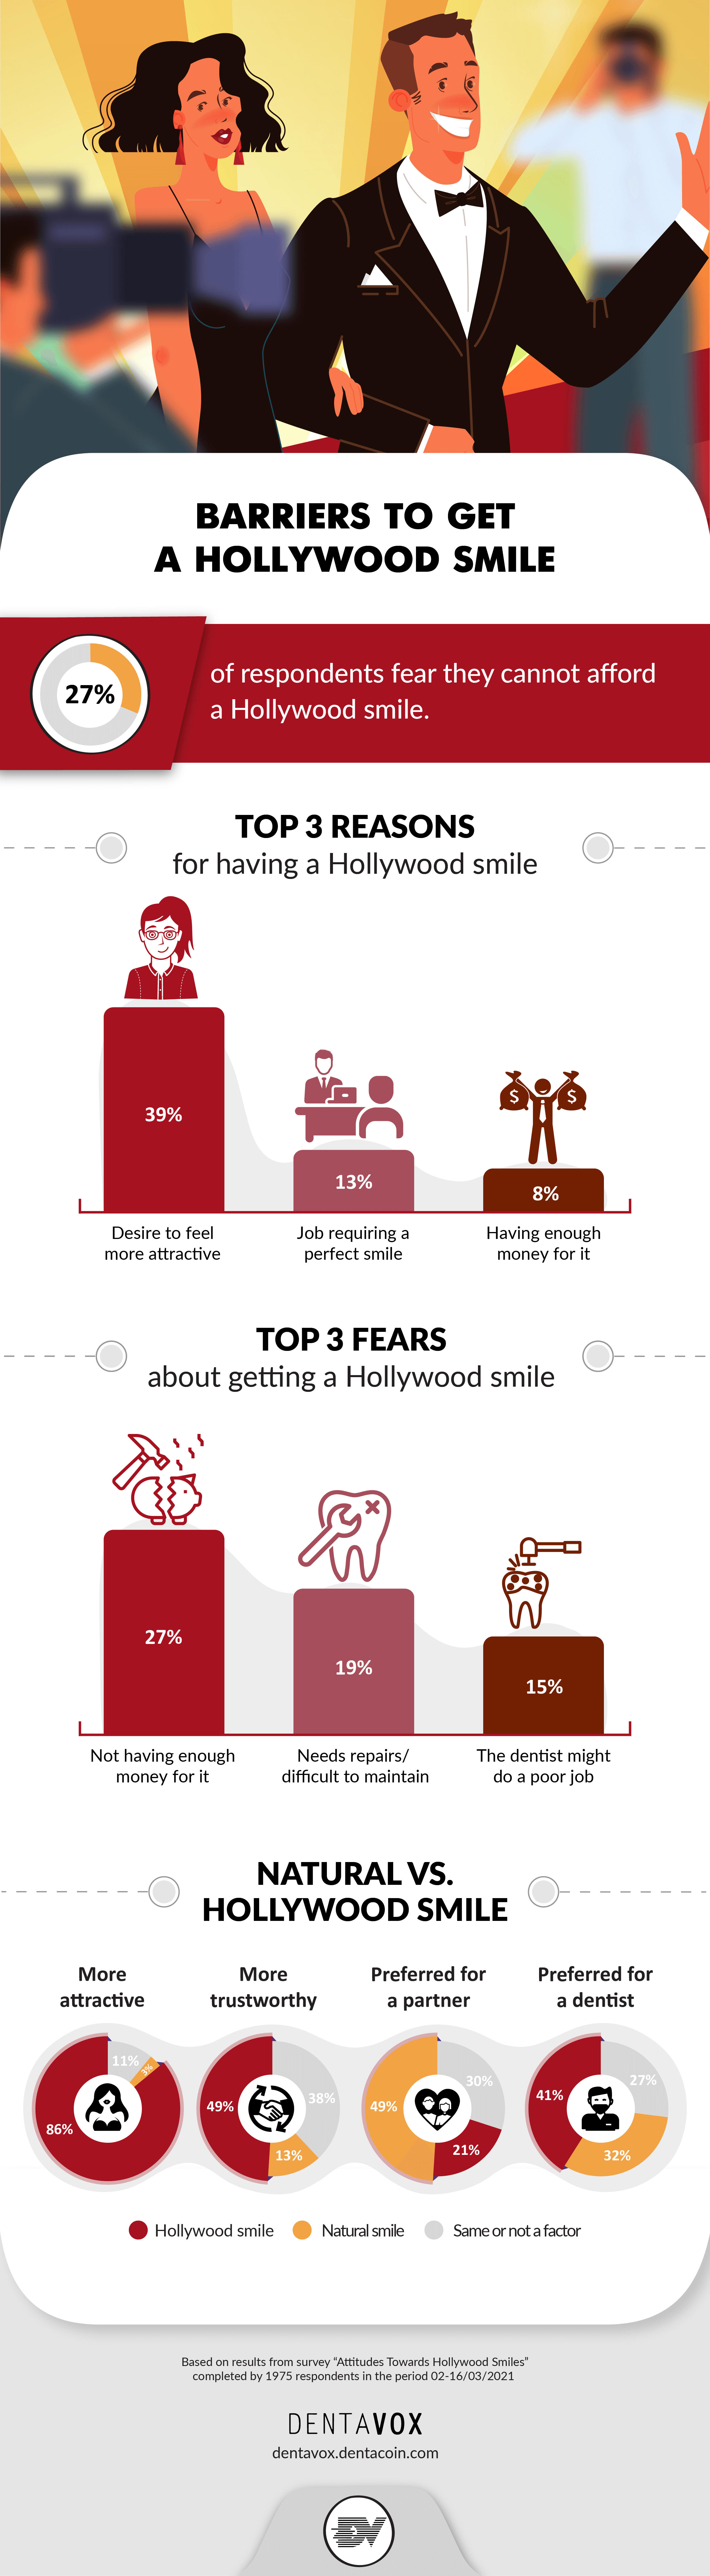 hollywood smile barriers dentavox infographic